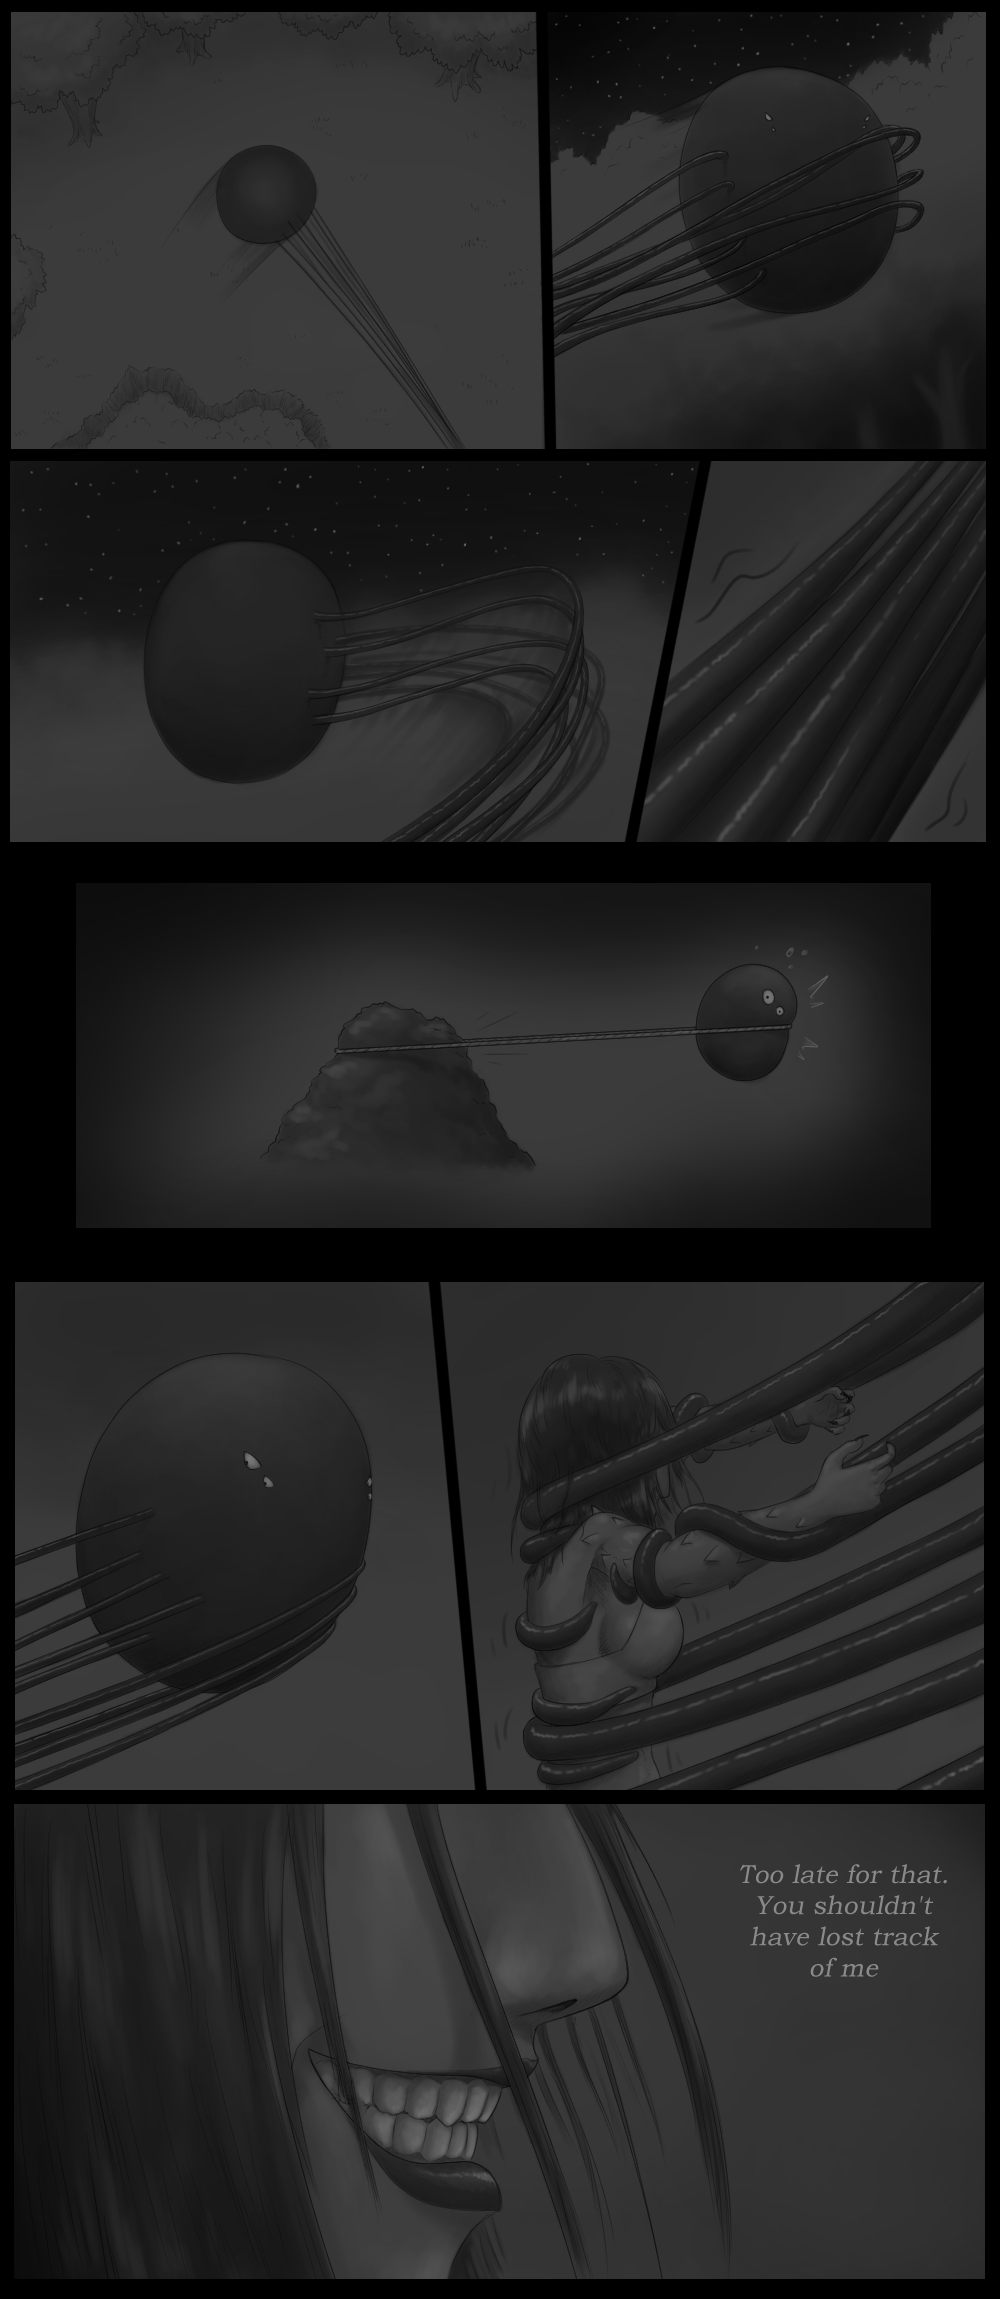 Page 74 - Battle against Glowslimer (Part 21)